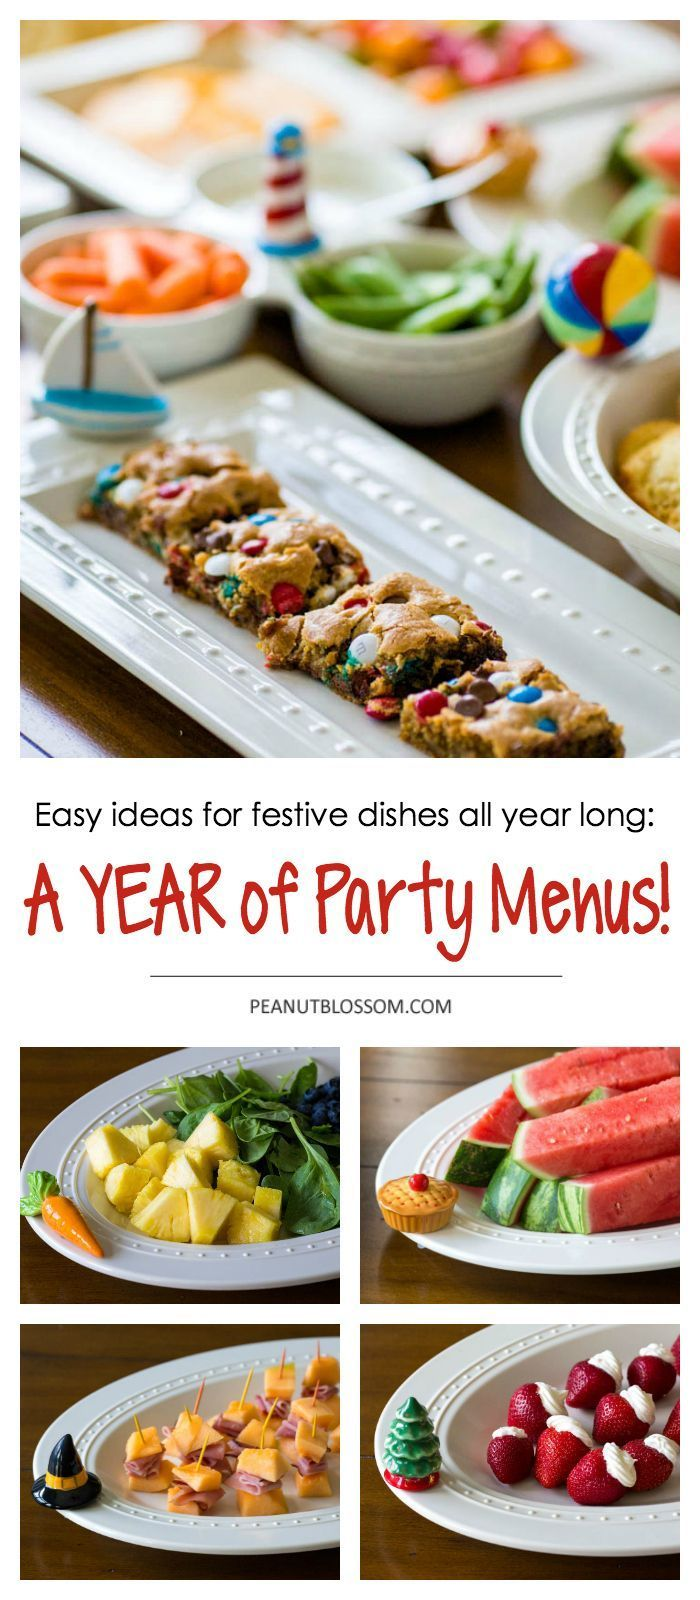 5 minute party menus Easy entertaining all year long